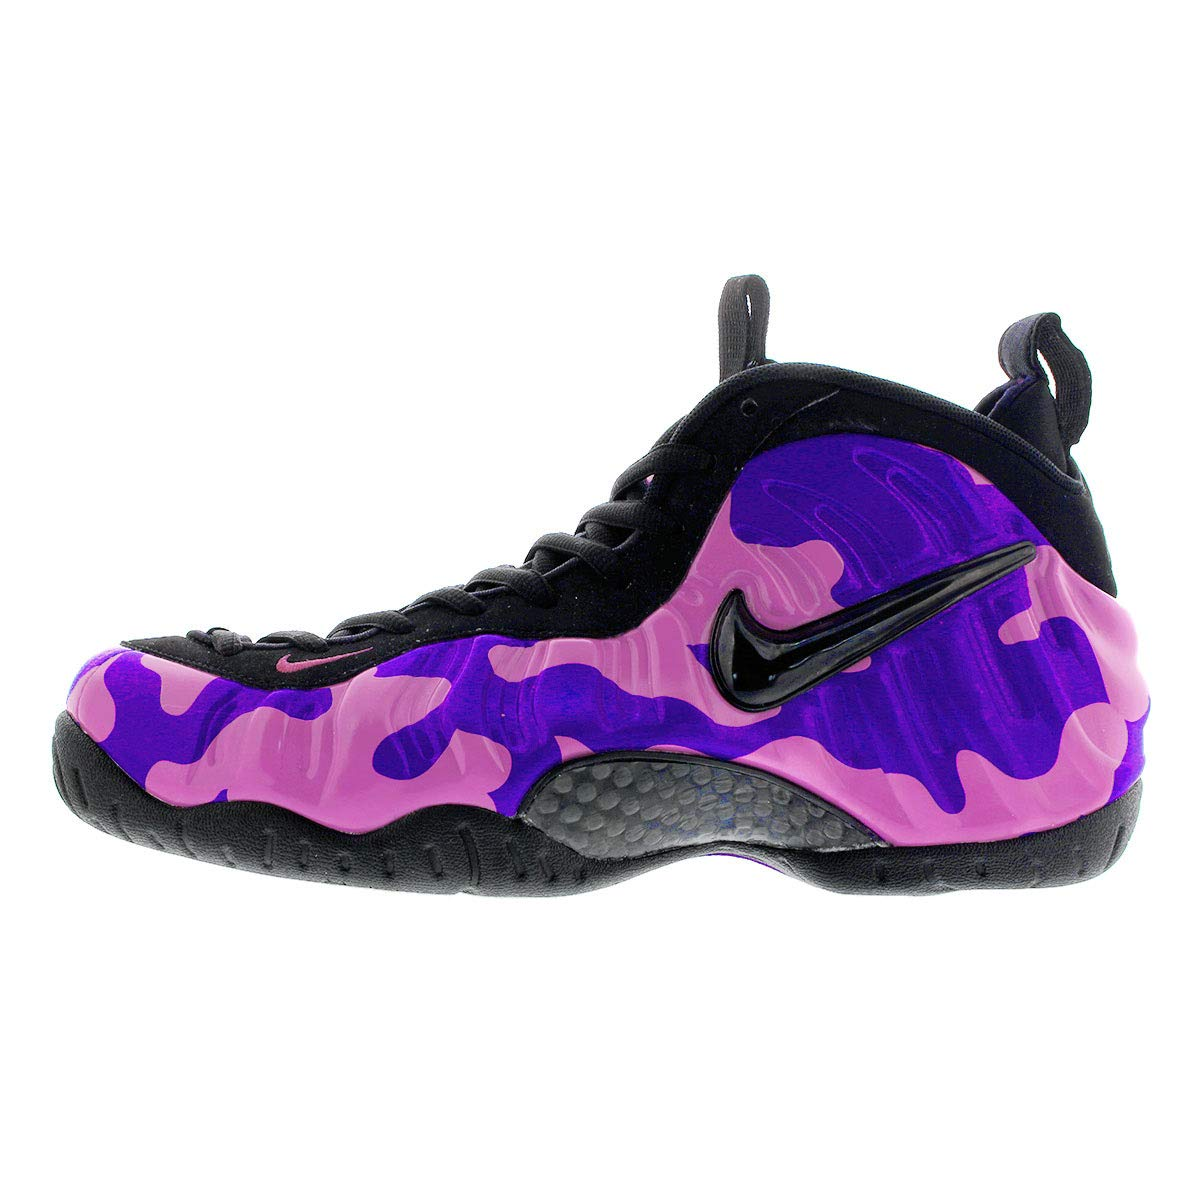 Nike Air Foamposite Pro Mens Mens 624041-012 Size 10.5 by Nike